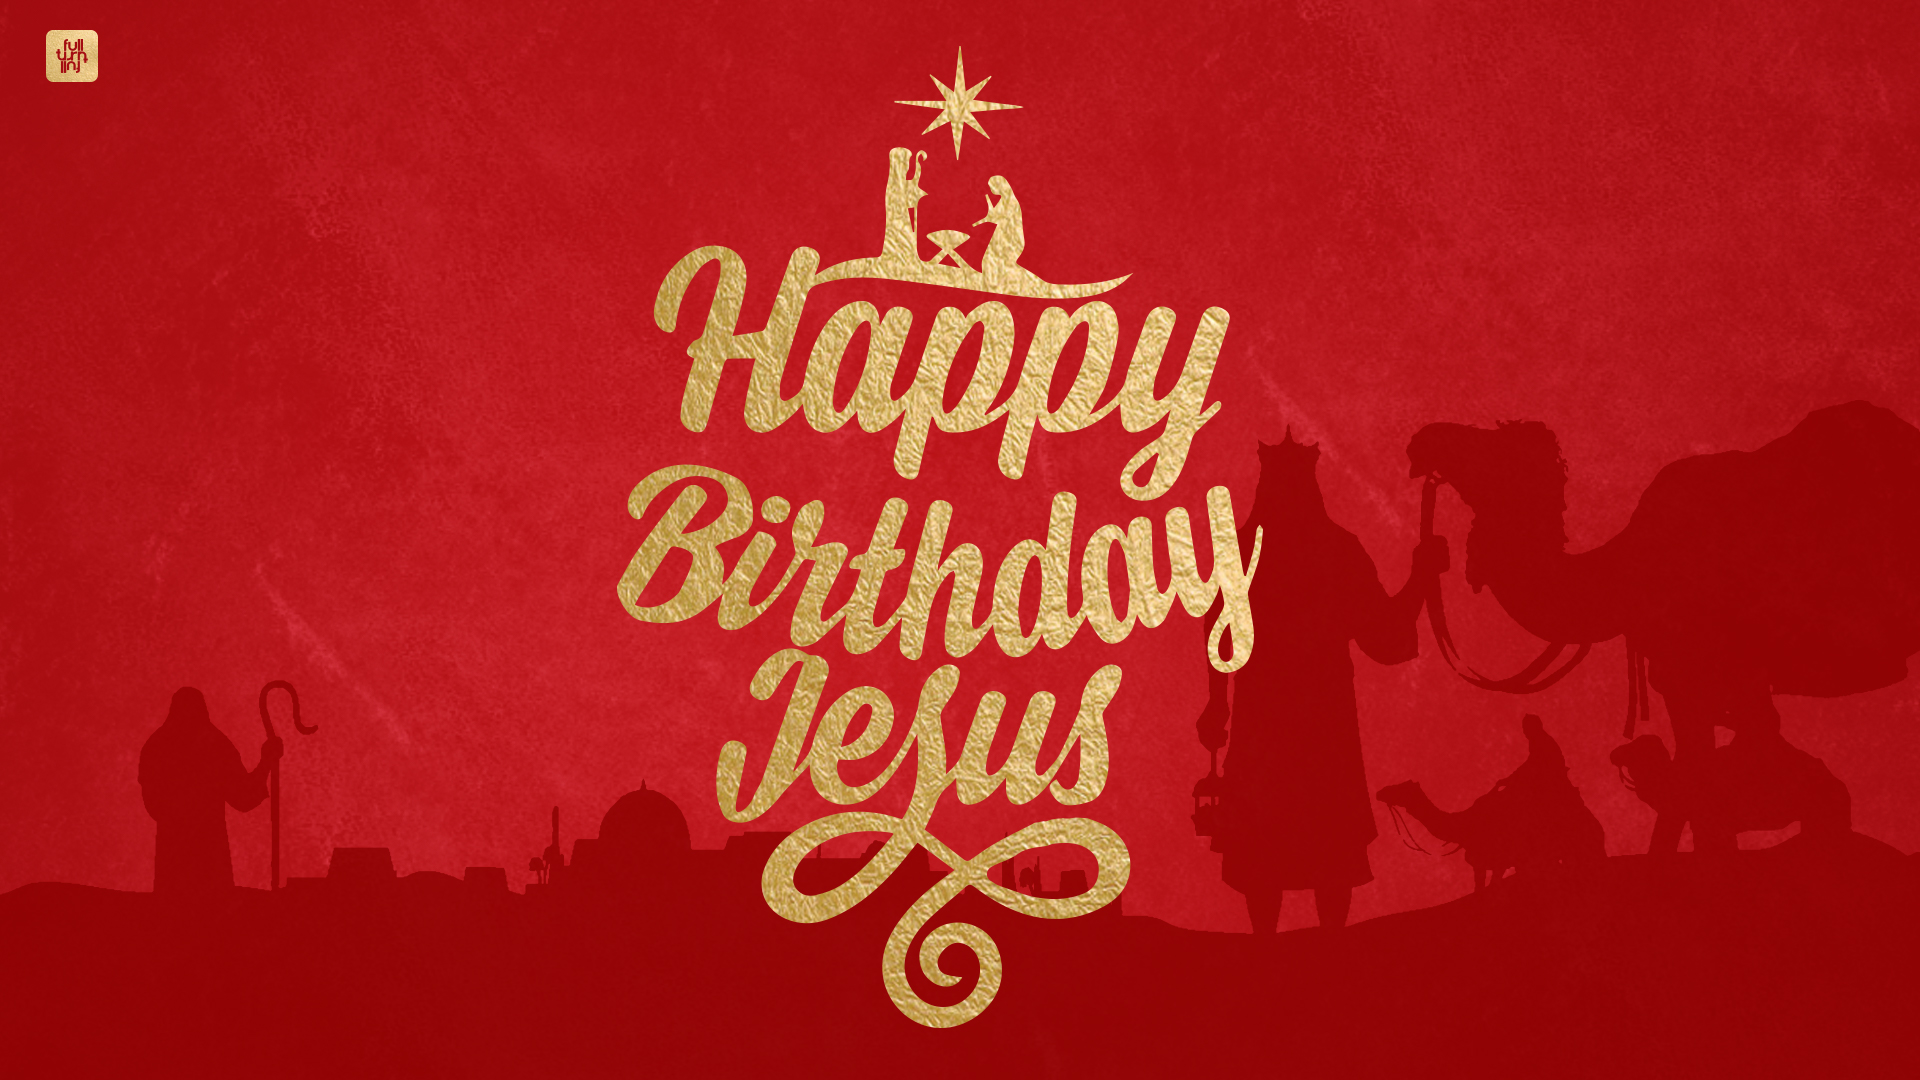 Happy Birthday Jesus Church Sermon Series Ideas